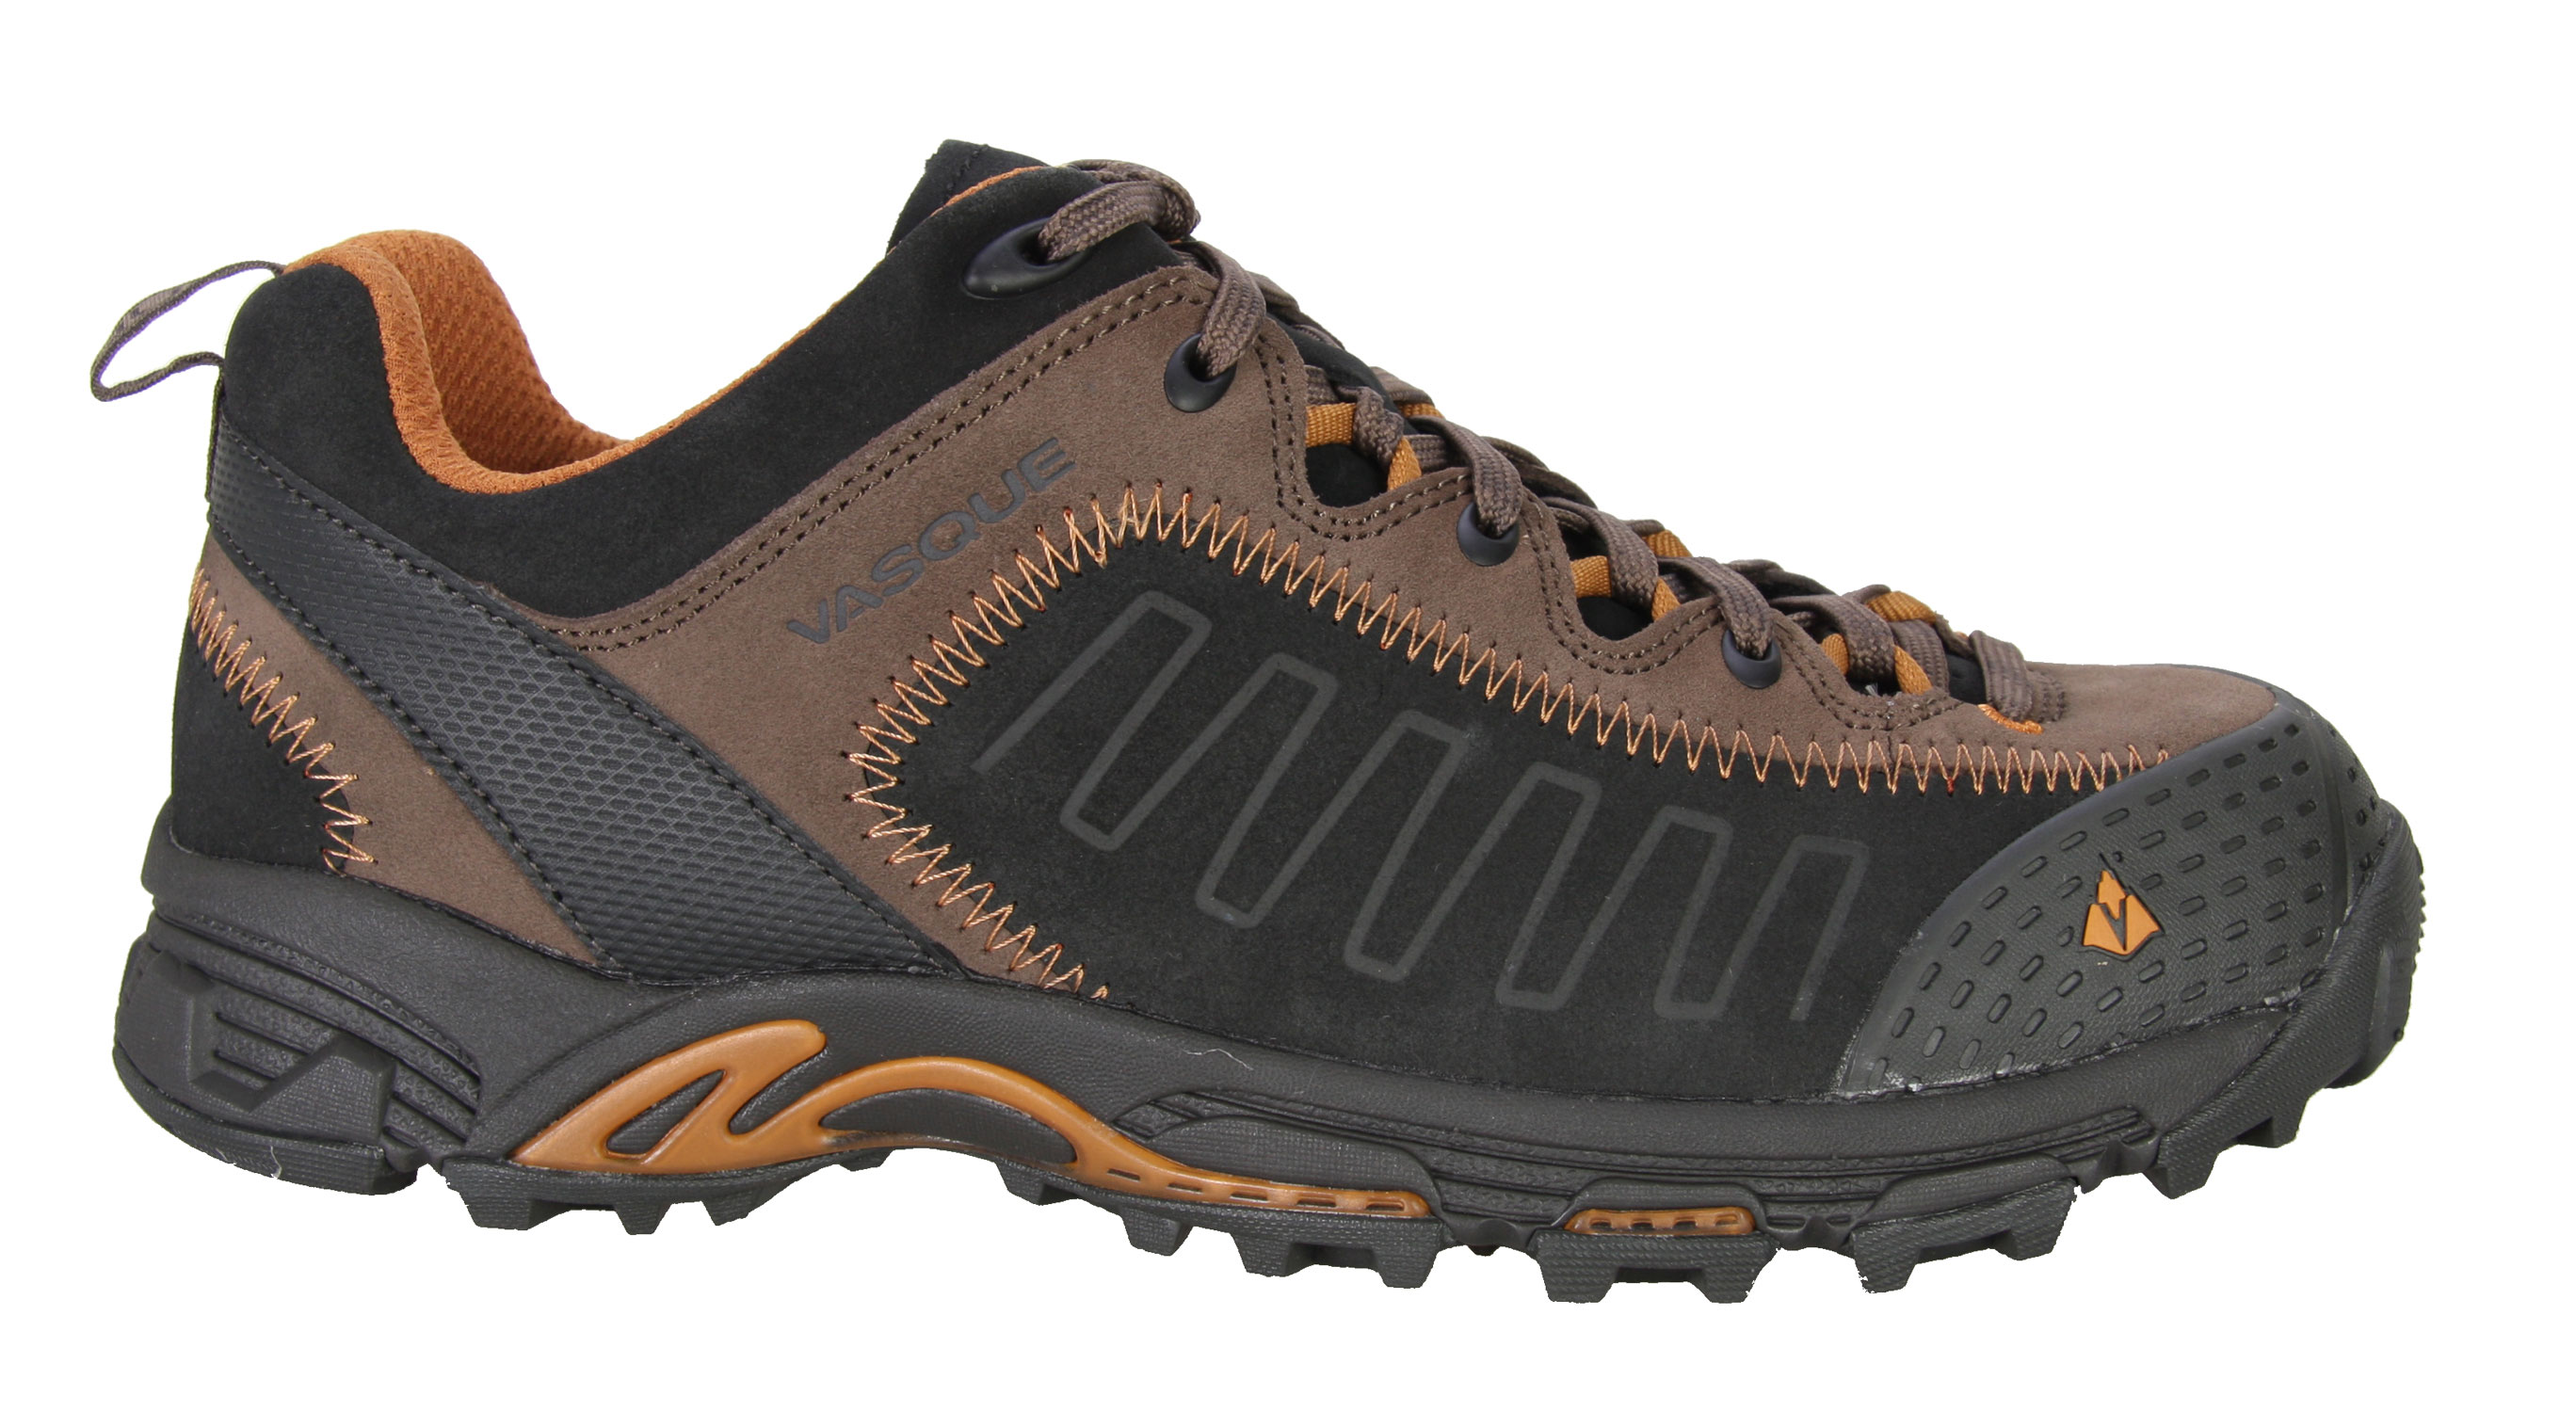 Camp and Hike Understated style, excellent durability and solid support for enlightened souls who appreciate functional utility. While being comfortable enough to live in every day, this hiking shoe's secure lacing and tenacious sticky rubber sole inspires plans into the unknown.Key Features of the Vasque Juxt Hiking Shoes: Weight: 1lb. 13 oz. (822g) Outsole: Vasque OTG (Off the Grid) Last: Arc Tempo Midsole: Molded EVA and TPU Plate - $57.95